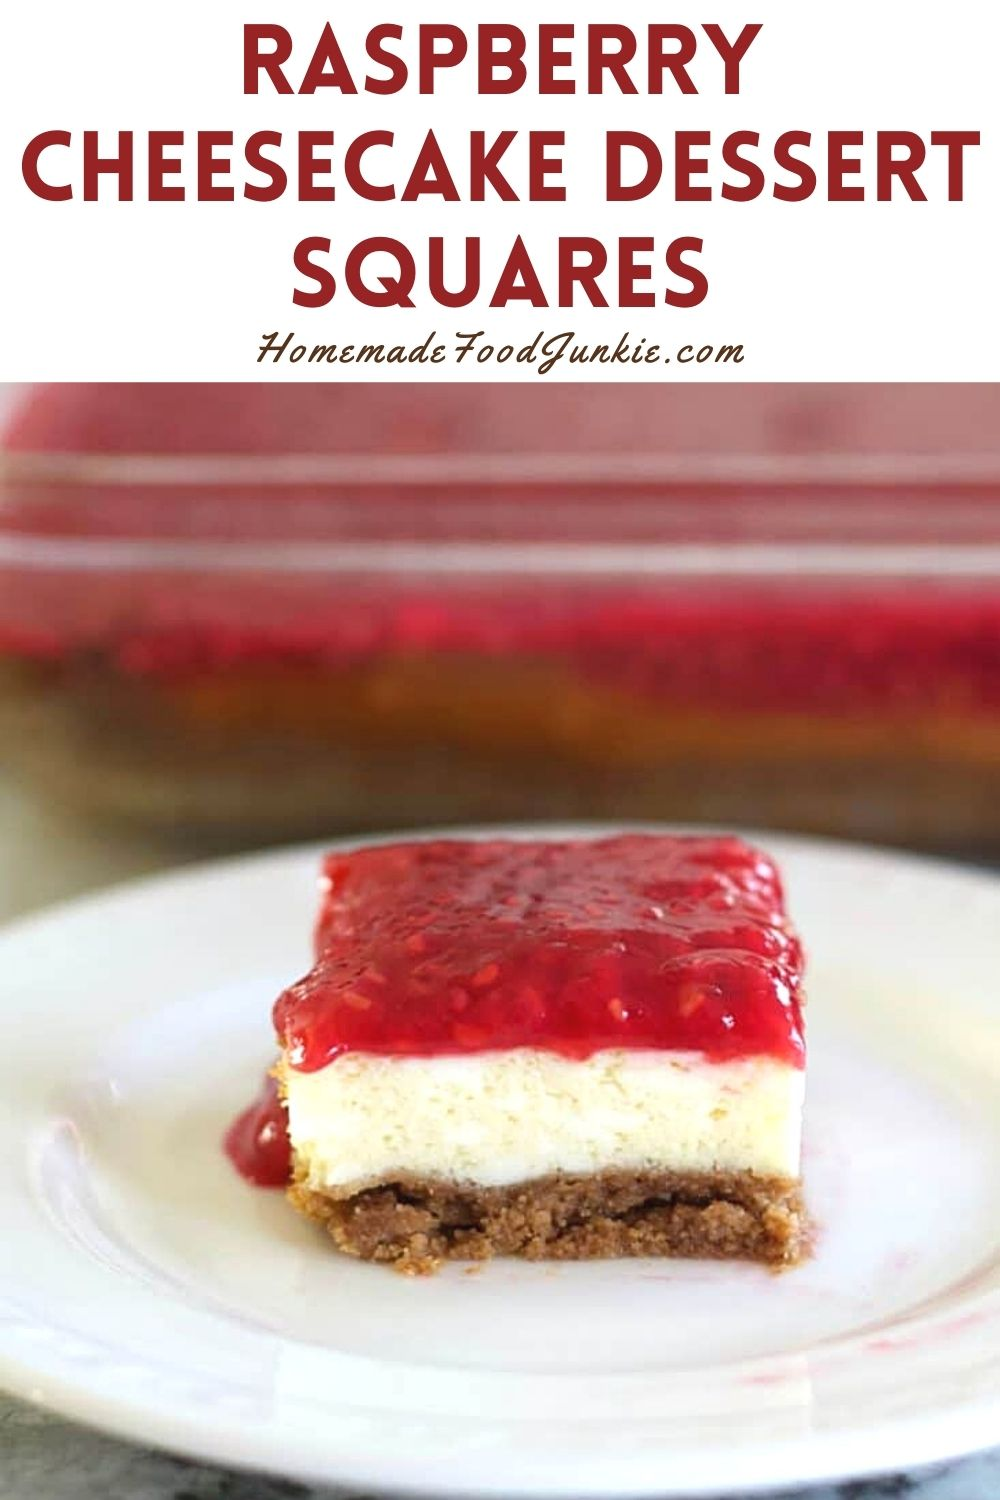 Raspberry cheesecake dessert squares-pin image